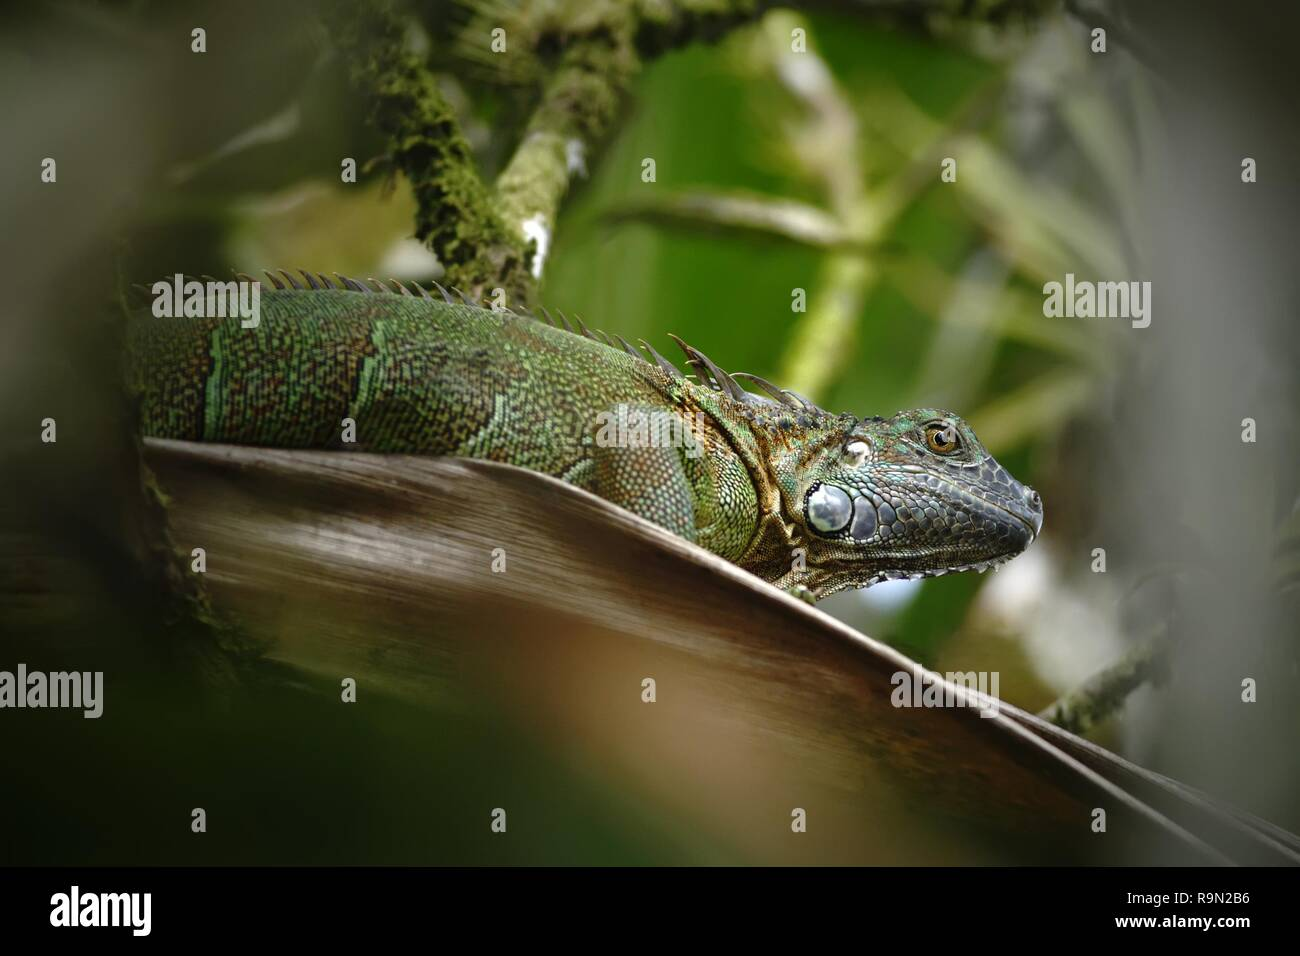 Green Iguana sitting on a branch in the rainforest, Costa Rica,  Lizard's head close-up view. Small wild animal looks like a dragon, green reptile - Stock Image